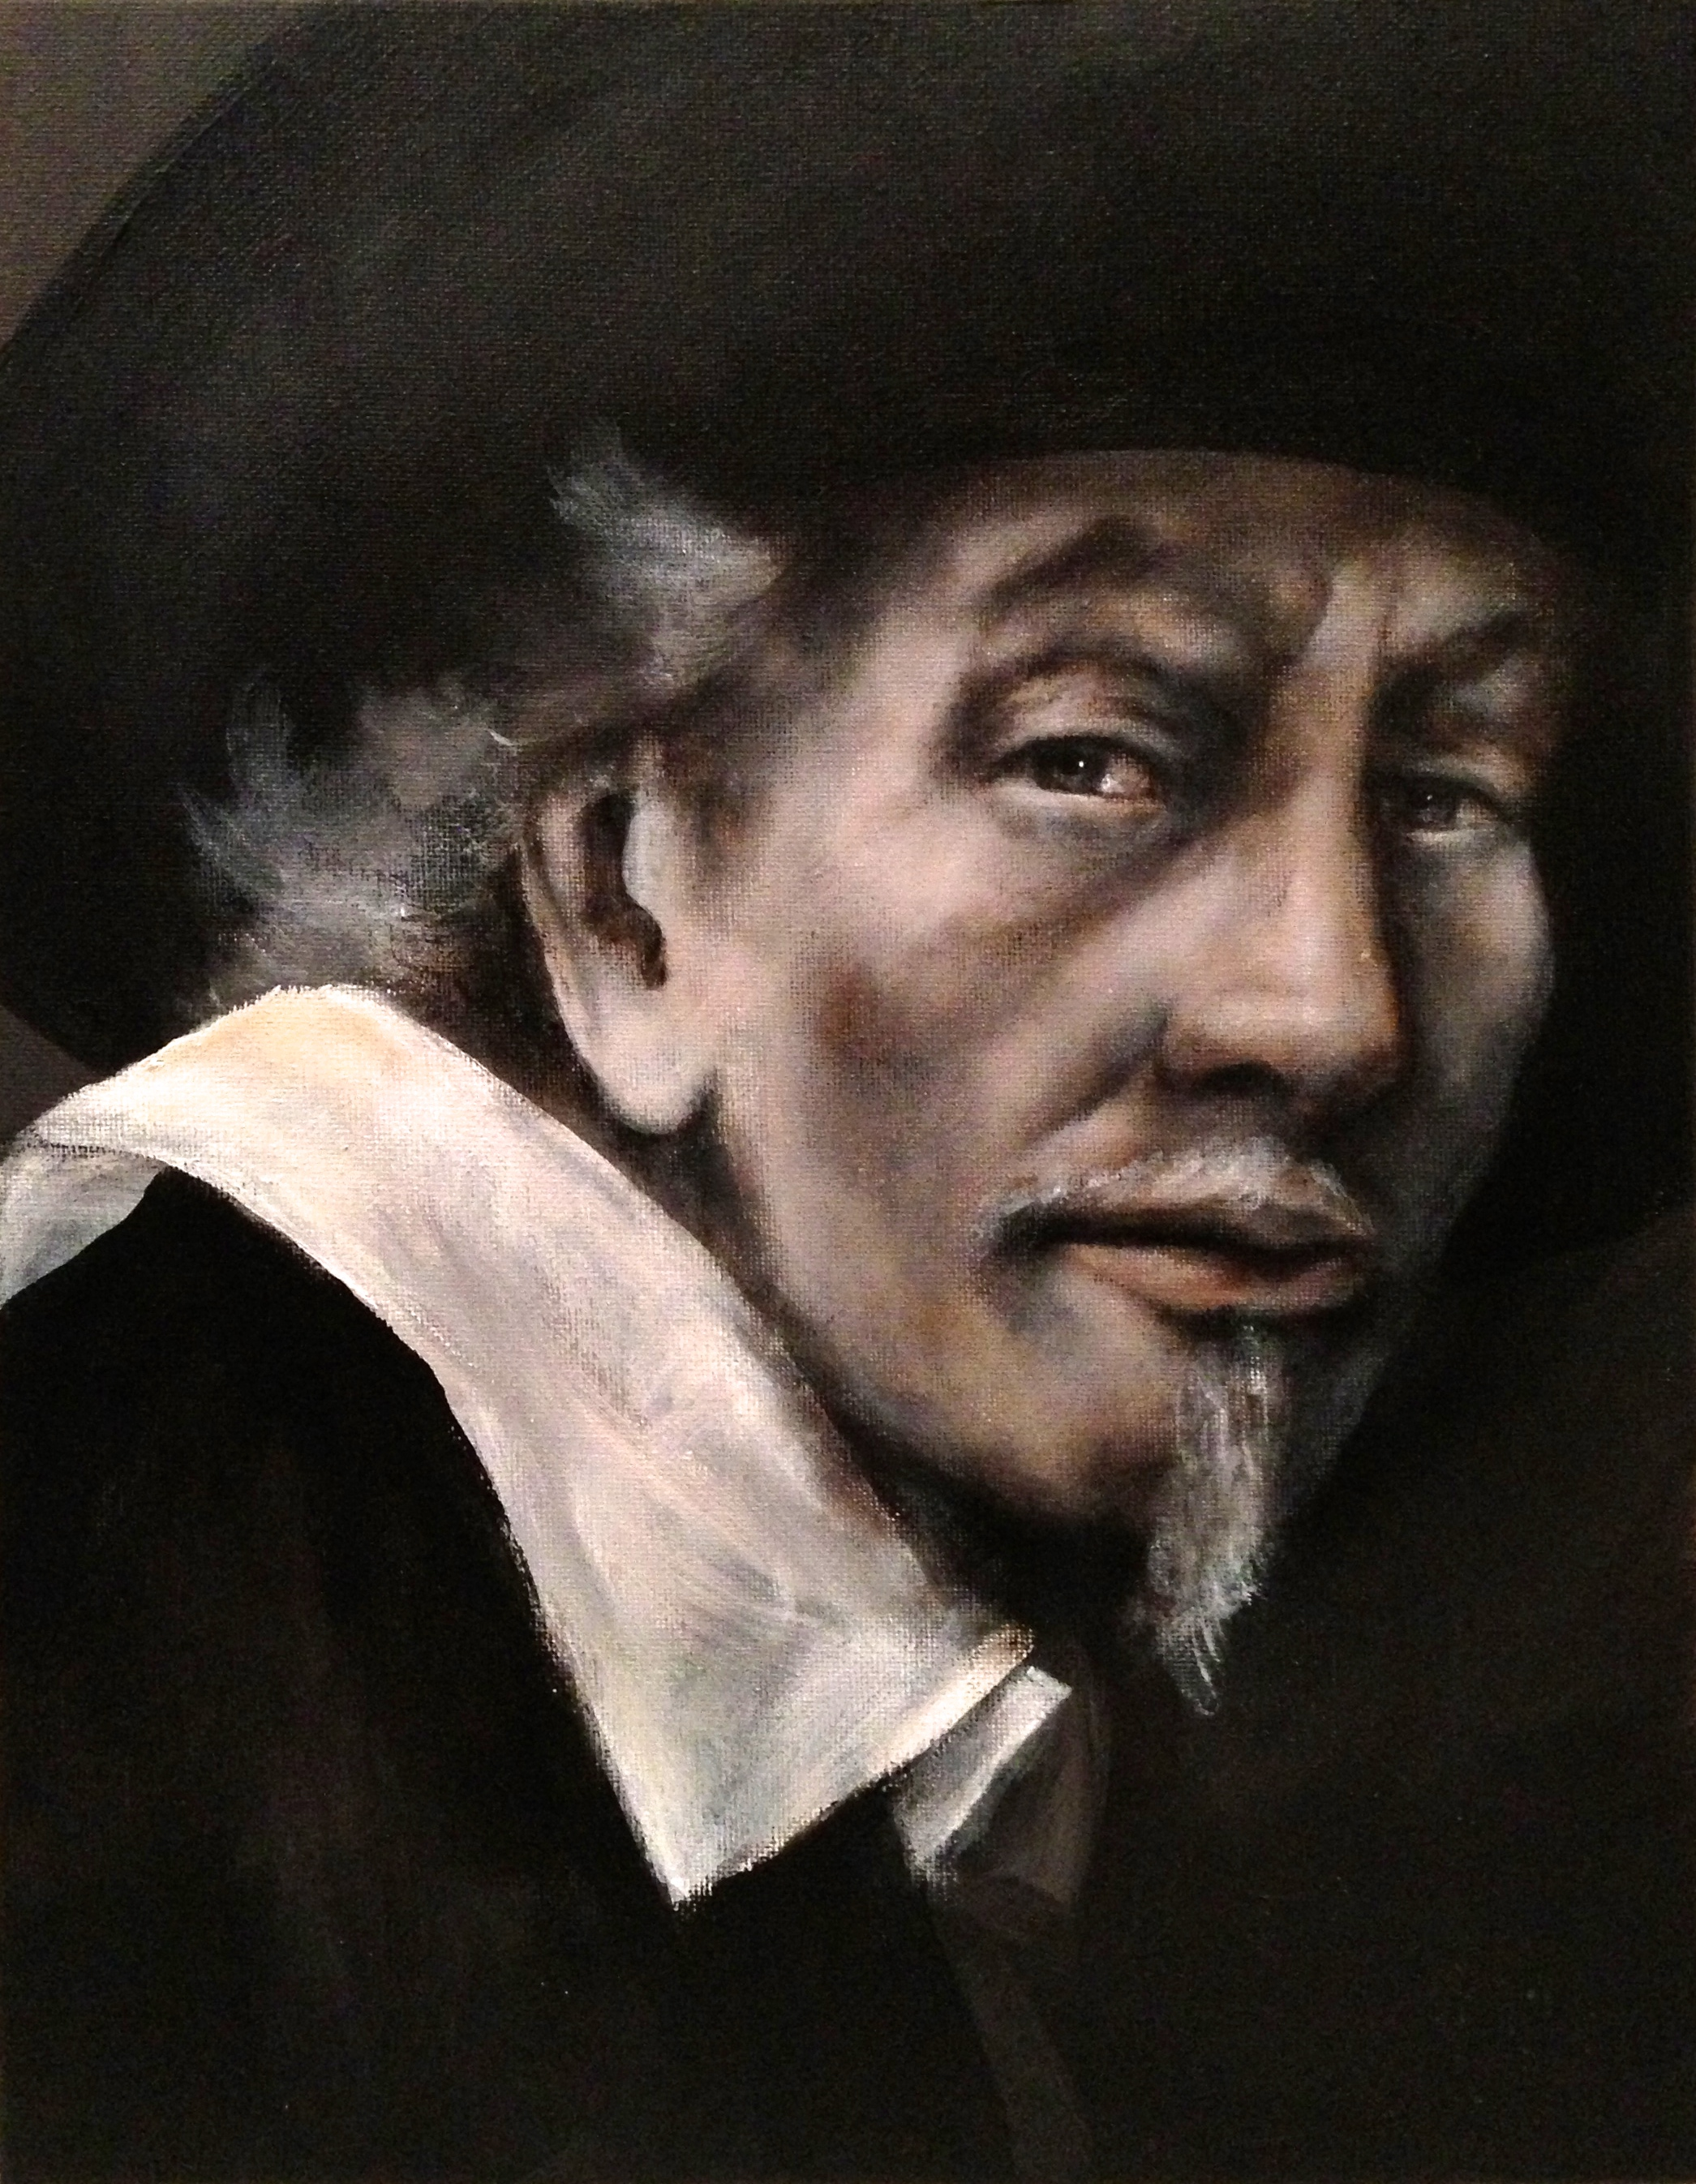 My Rembrandt, 2017 - a personal challenge piece   Acrylic on canvas